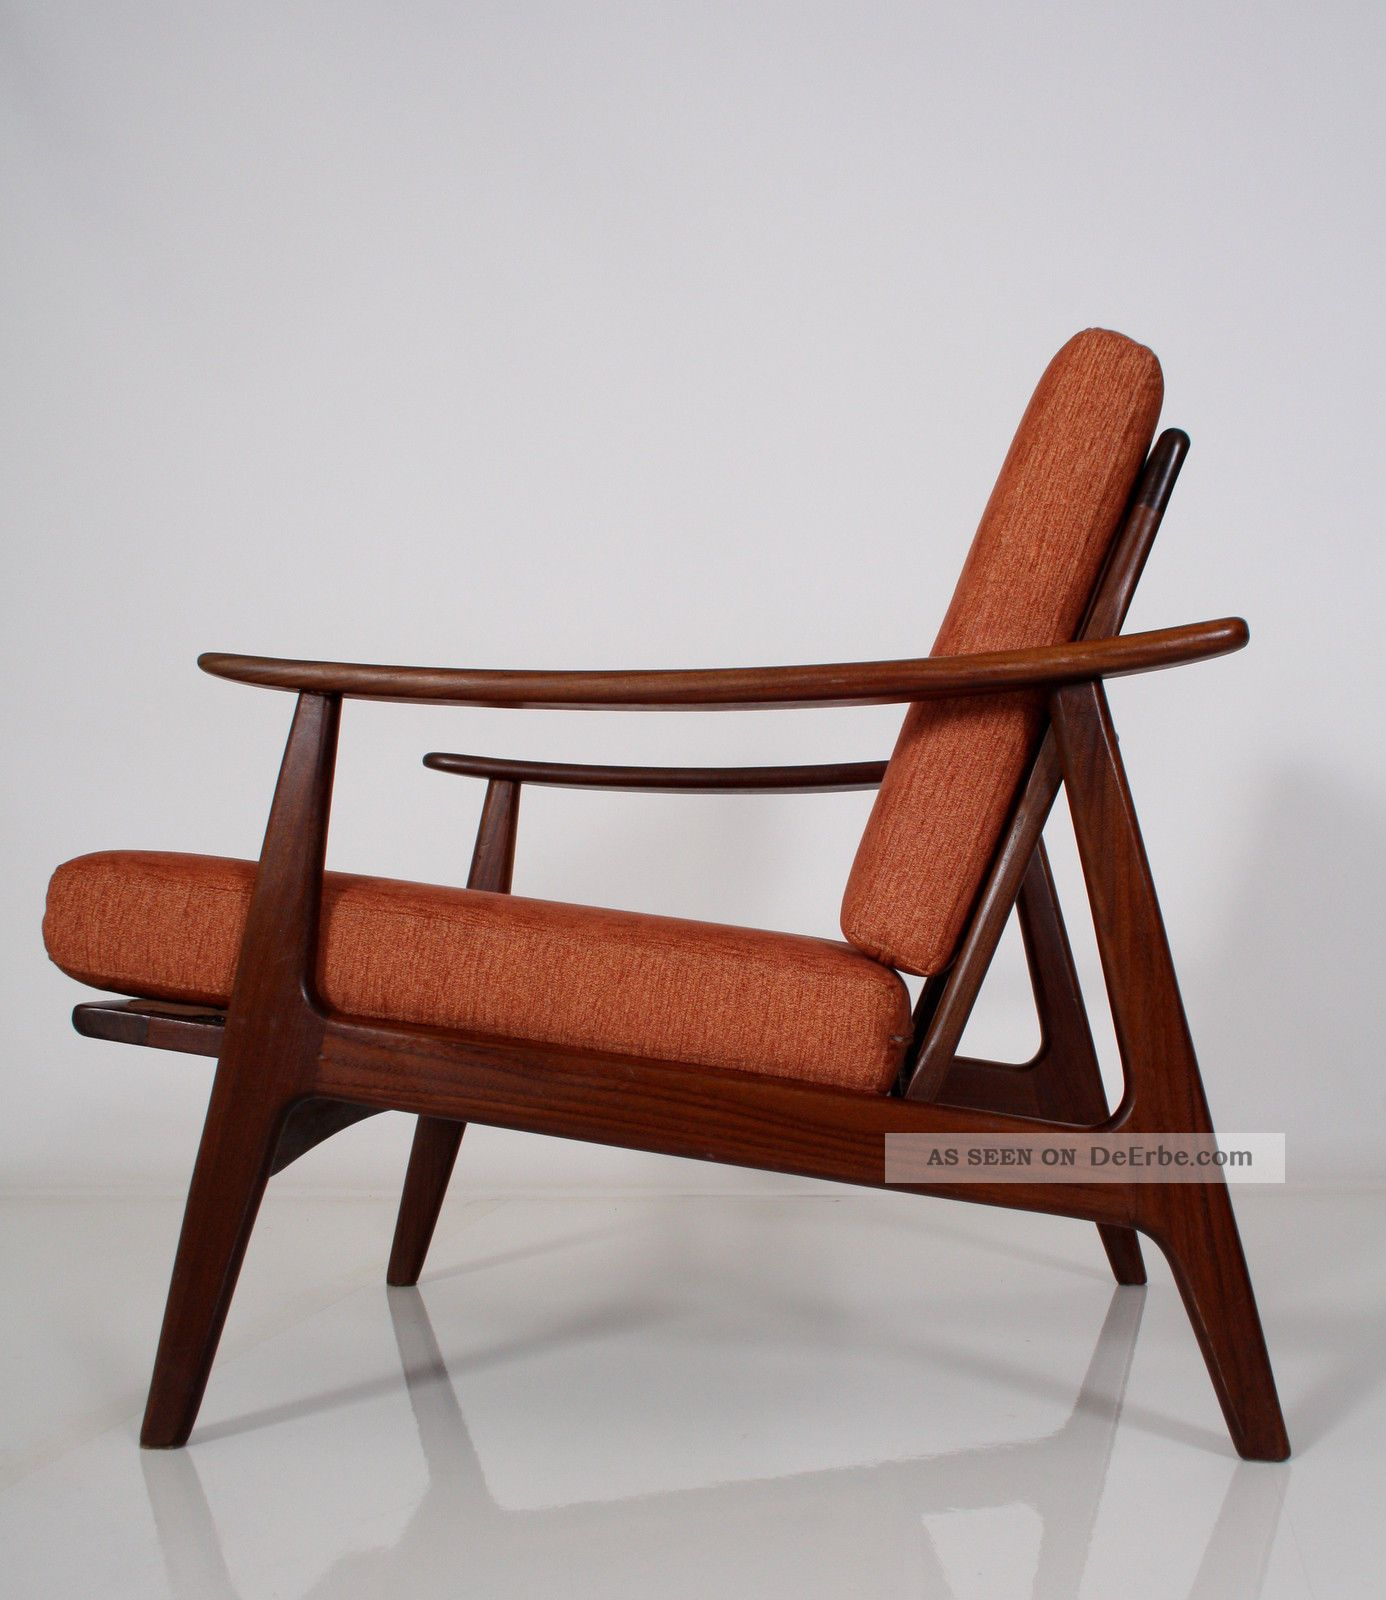 Teak Sessel Danish 2 60er Teak Sessel Danish Design Top 60s Easy Chairs Fauteuil Poltrona